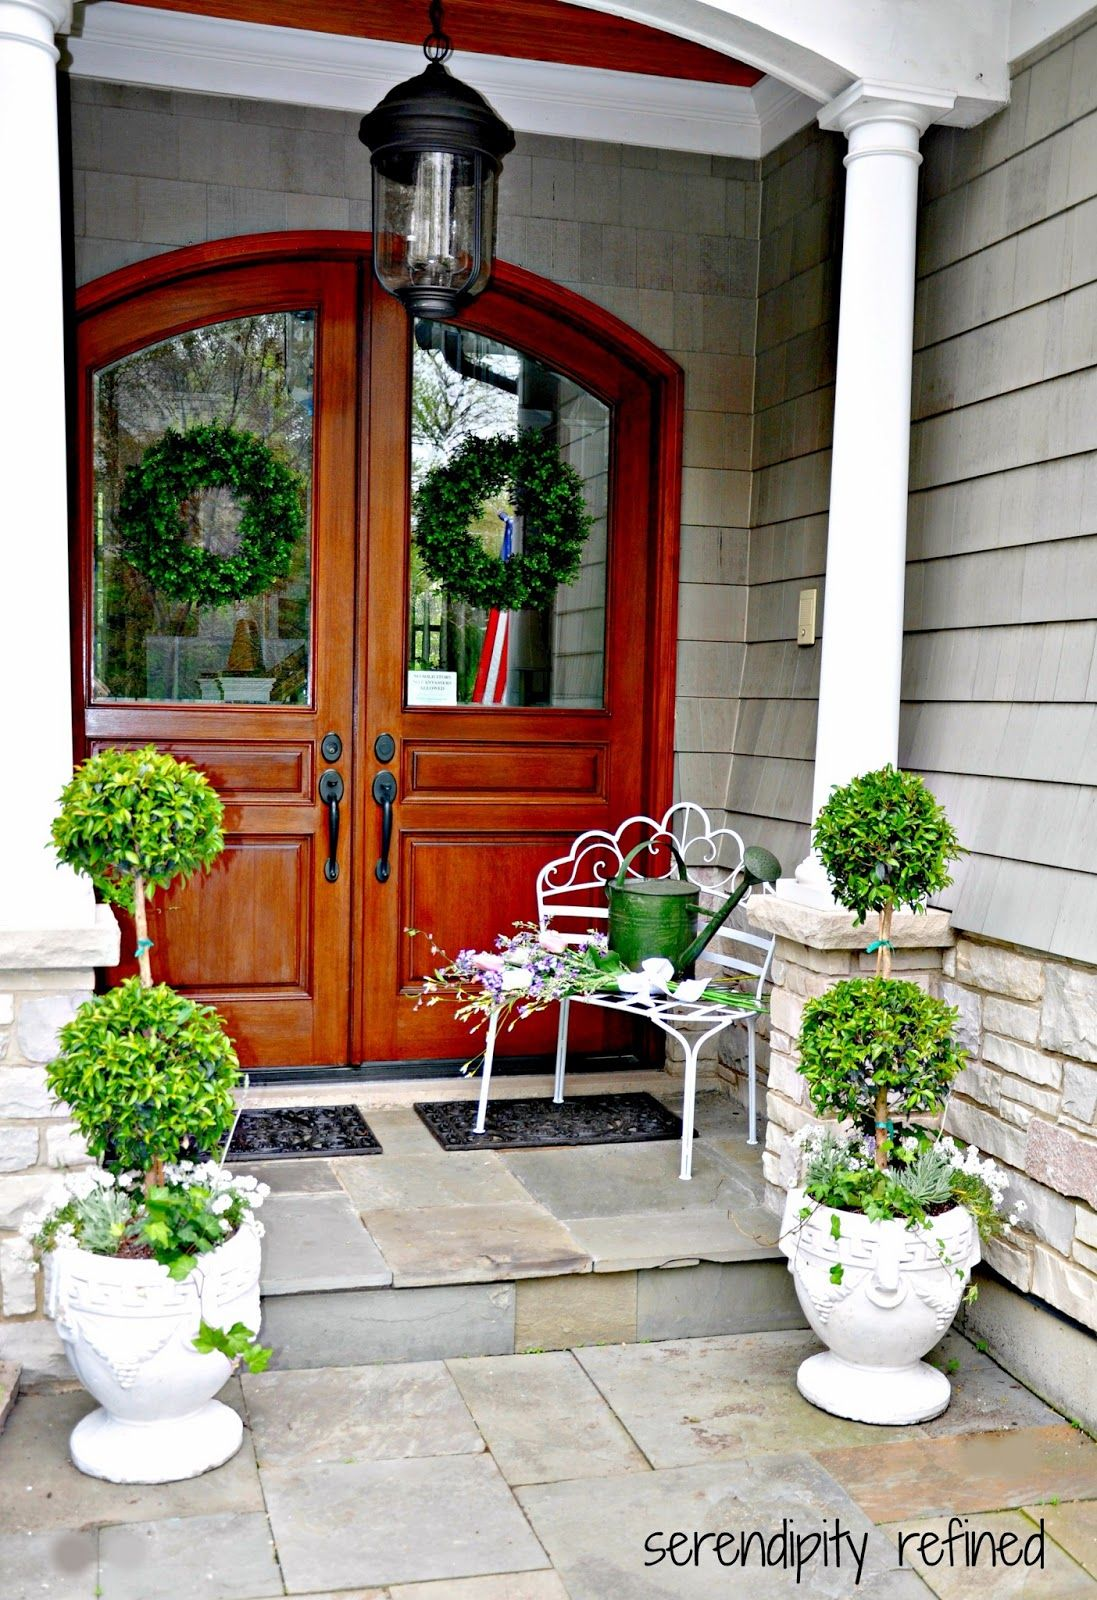 Front door ideas summer - Box Wood In Planter Summer Urn Planter Container Garden Hydrangea Lavender Rose Ivy Grey Front Door